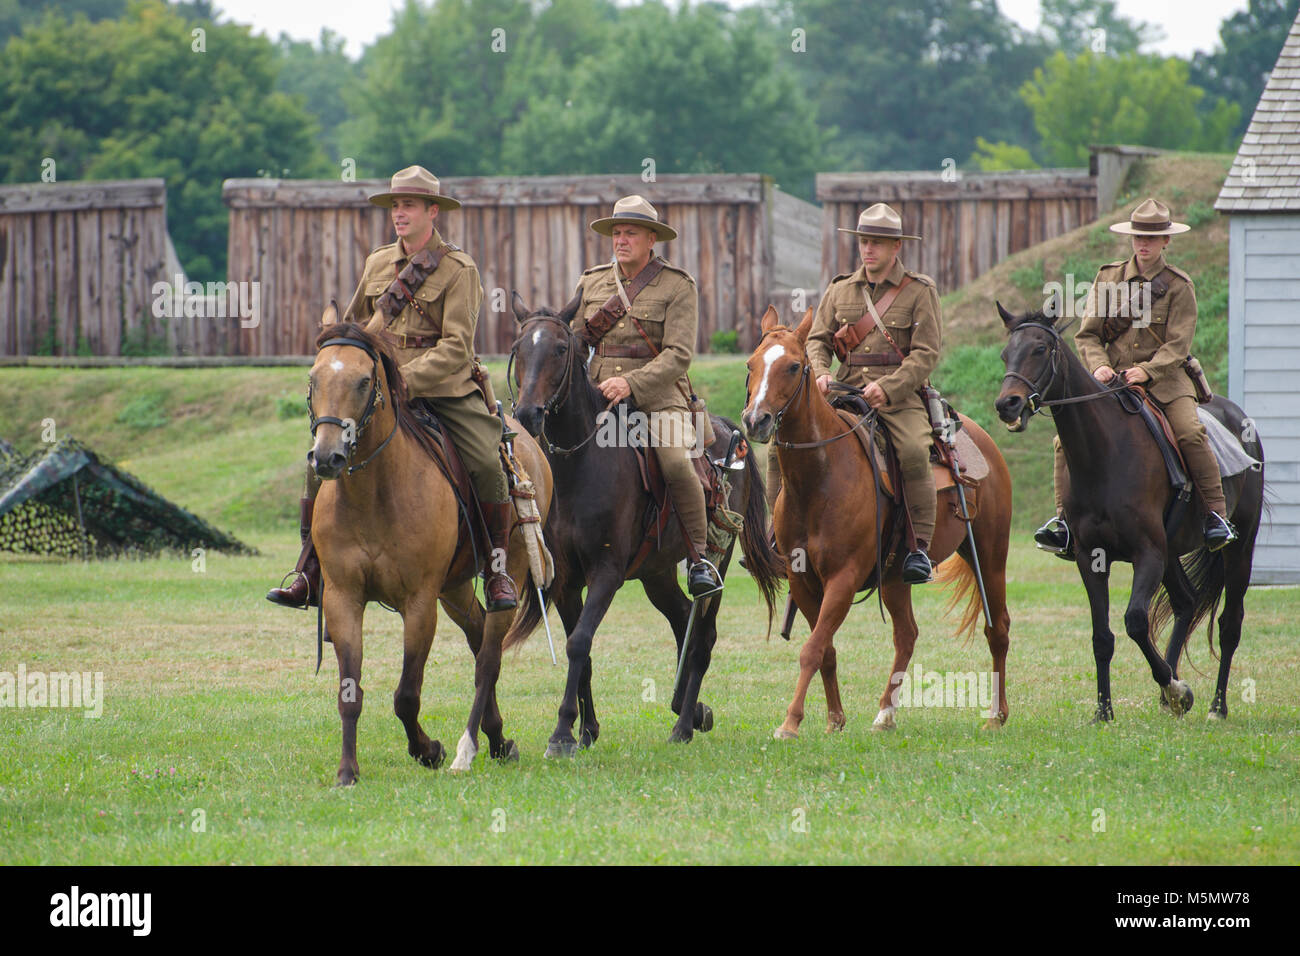 Reanactors dressed in period costume performing a horse riding display at Fort George National Historic Site, Niagara - Stock Image